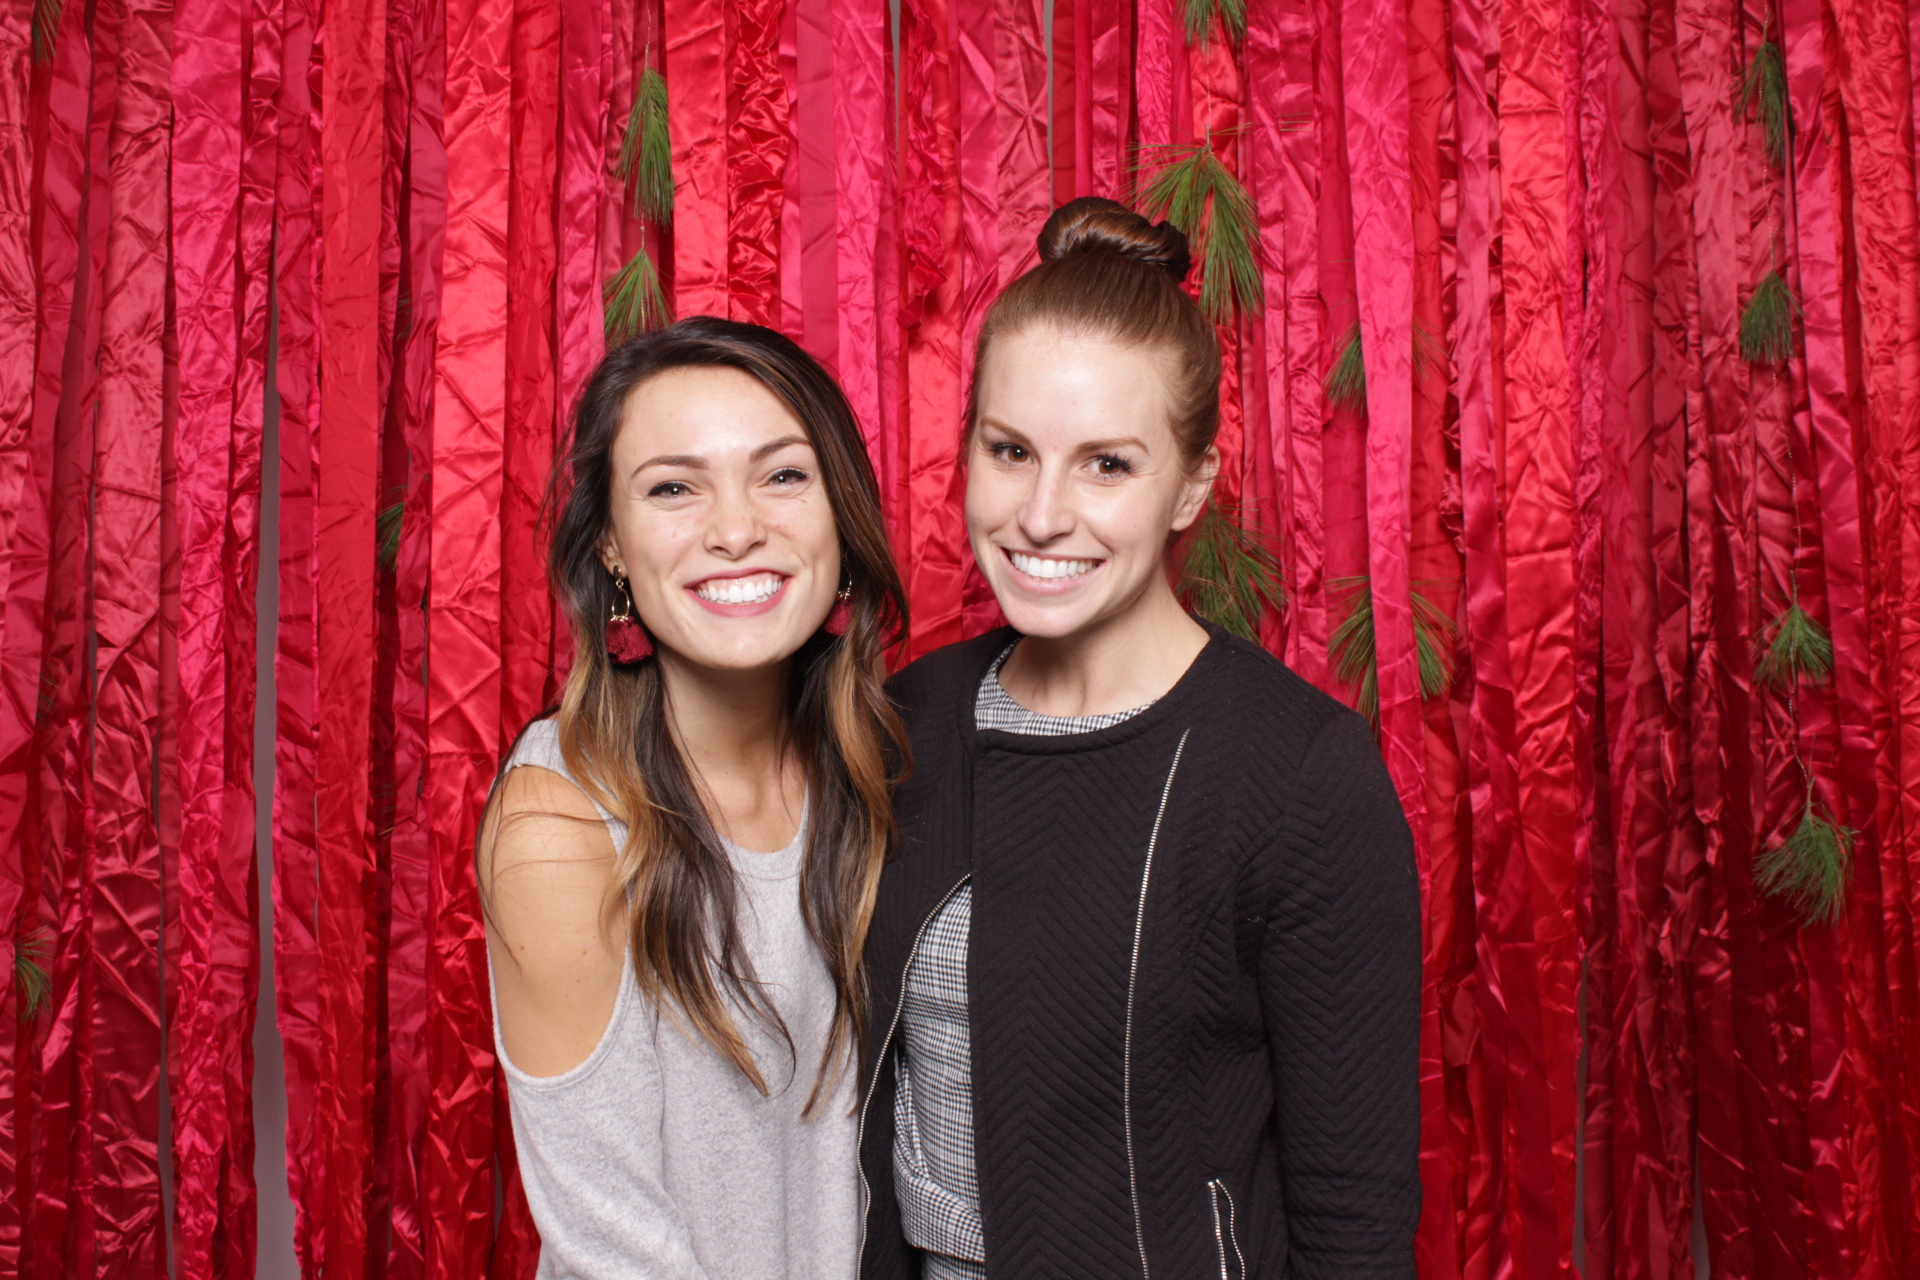 Hutton_House_Minneapolis_Photo_booth_rentals.jpg